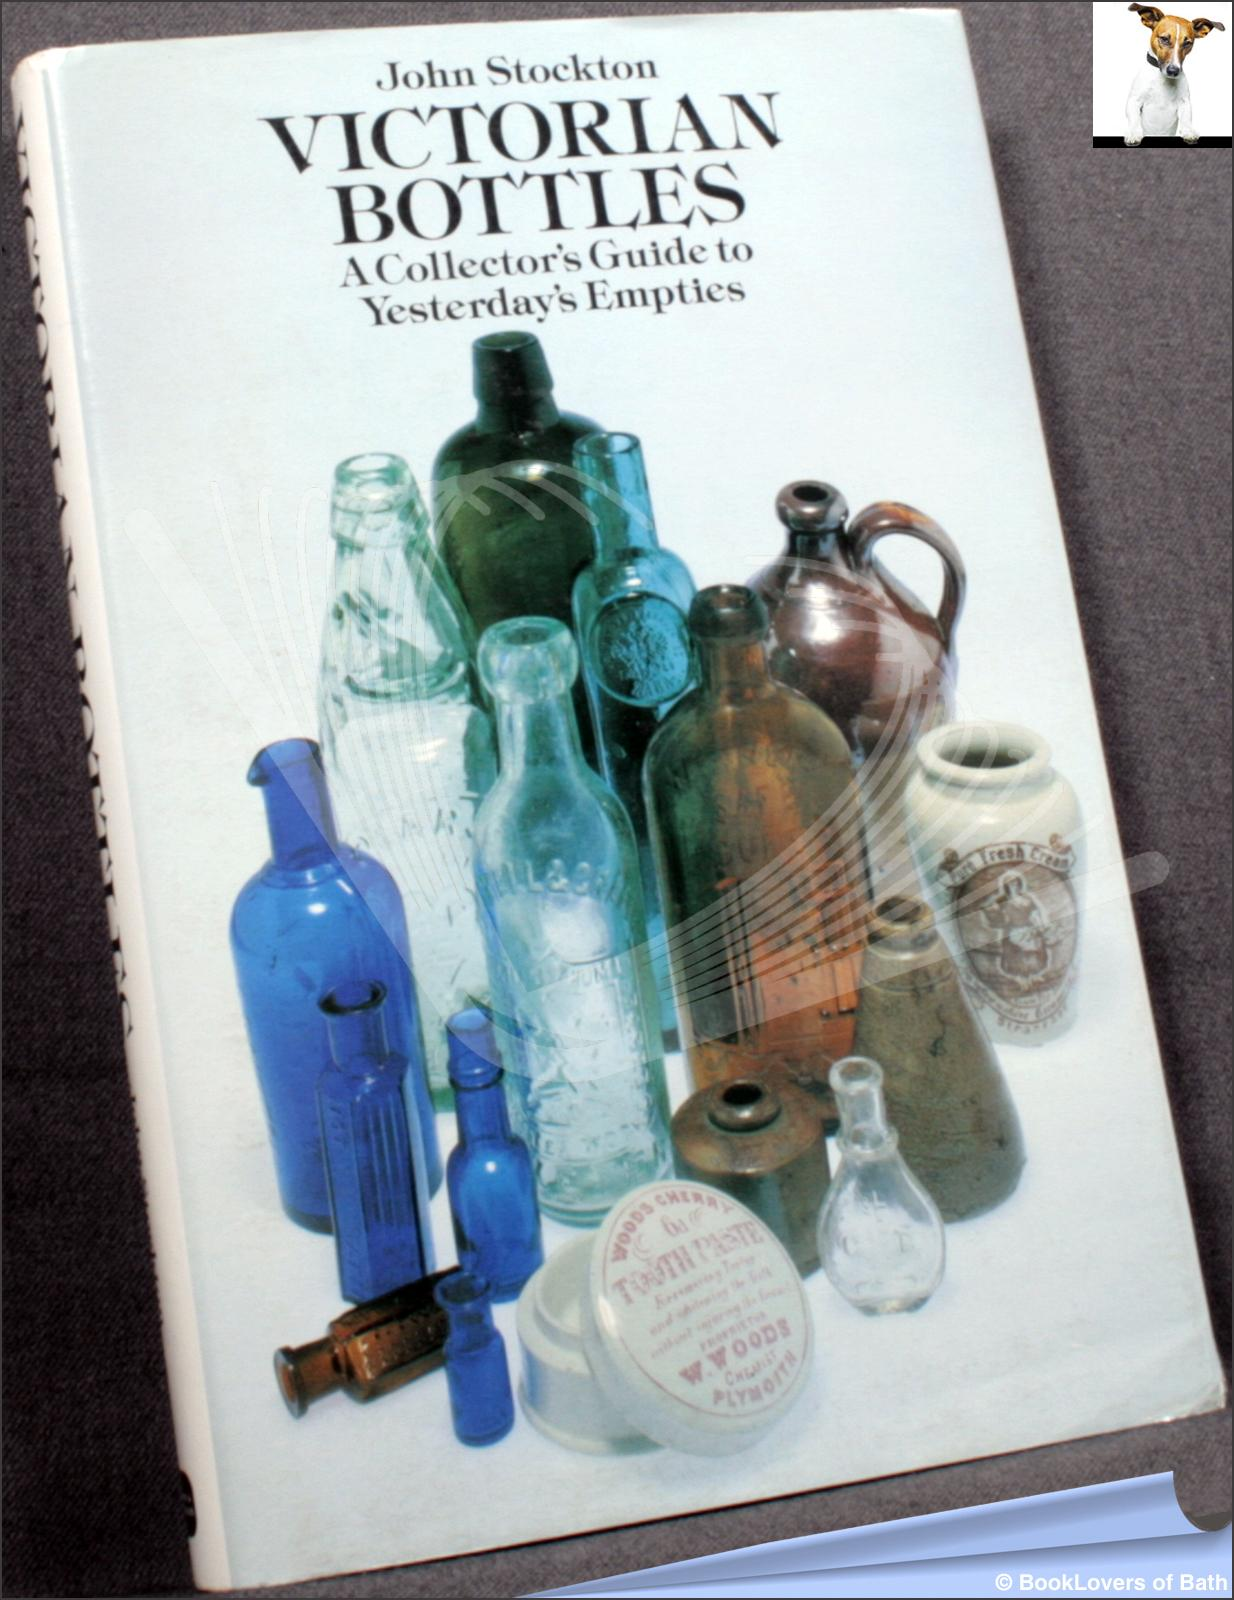 Victorian Bottles: A Collector's Guide to Yesterday's Empties - John Stockton